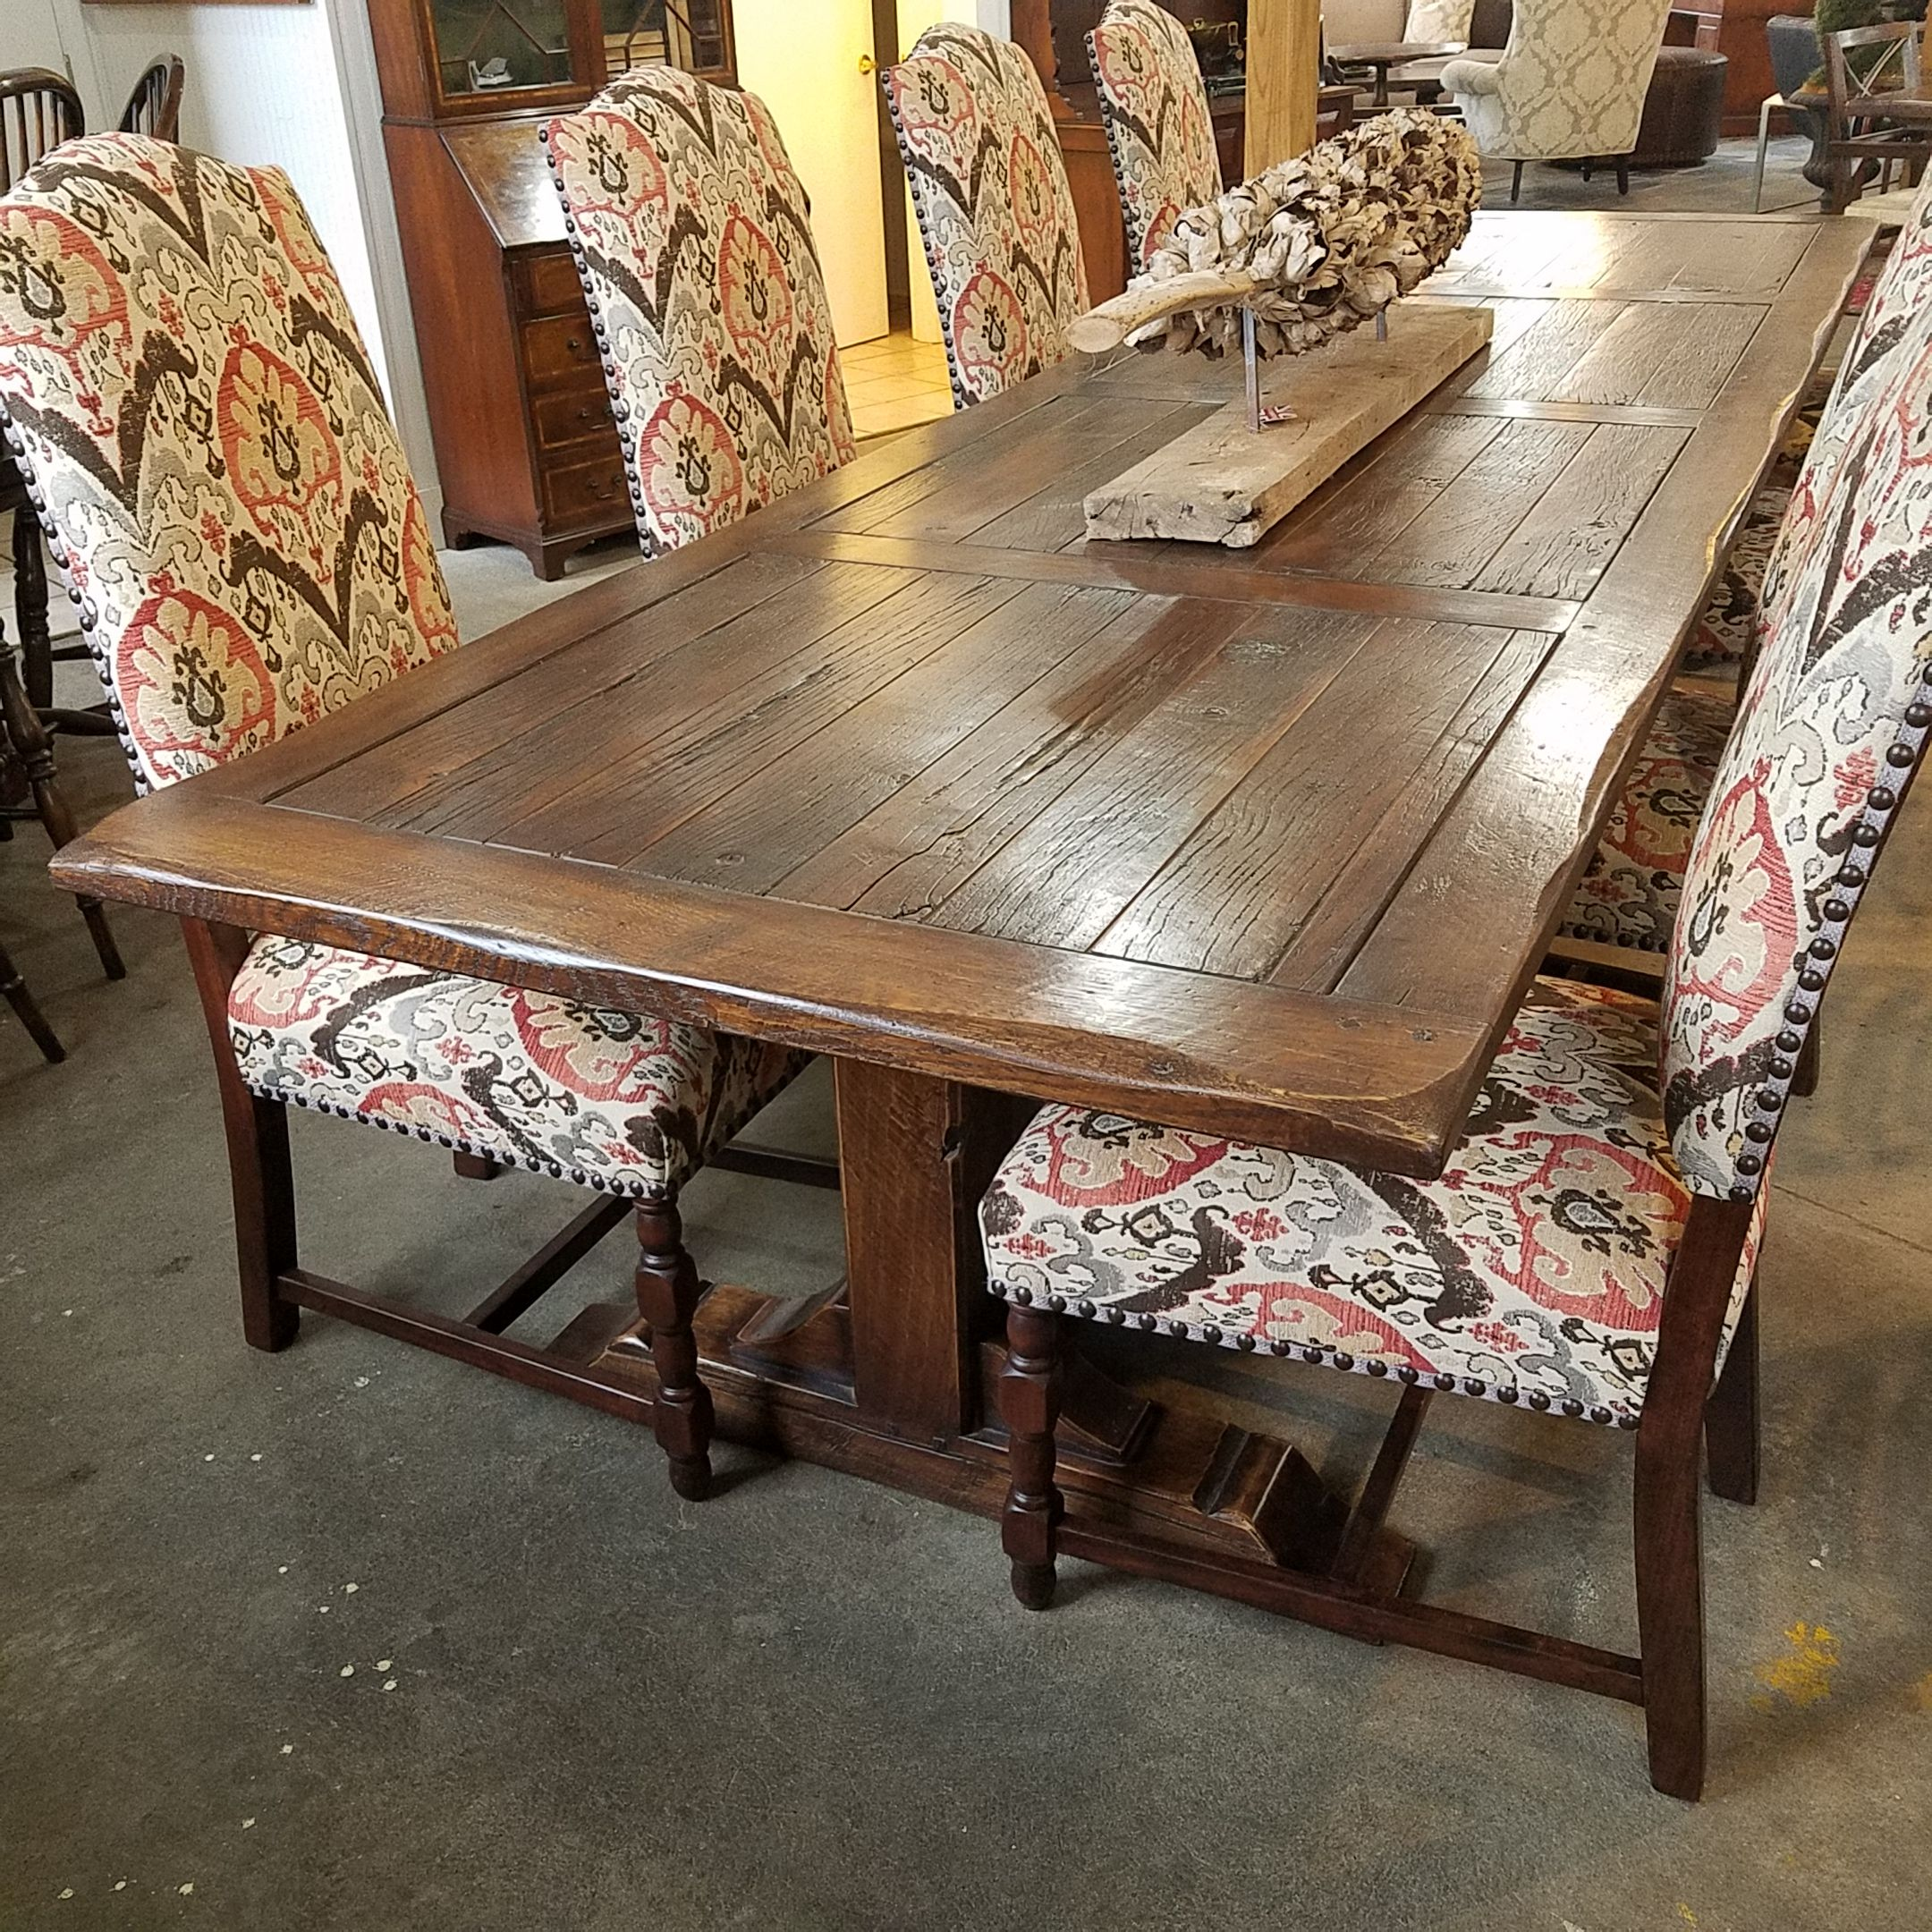 Full of character & charm our 10 panel top refectory table with